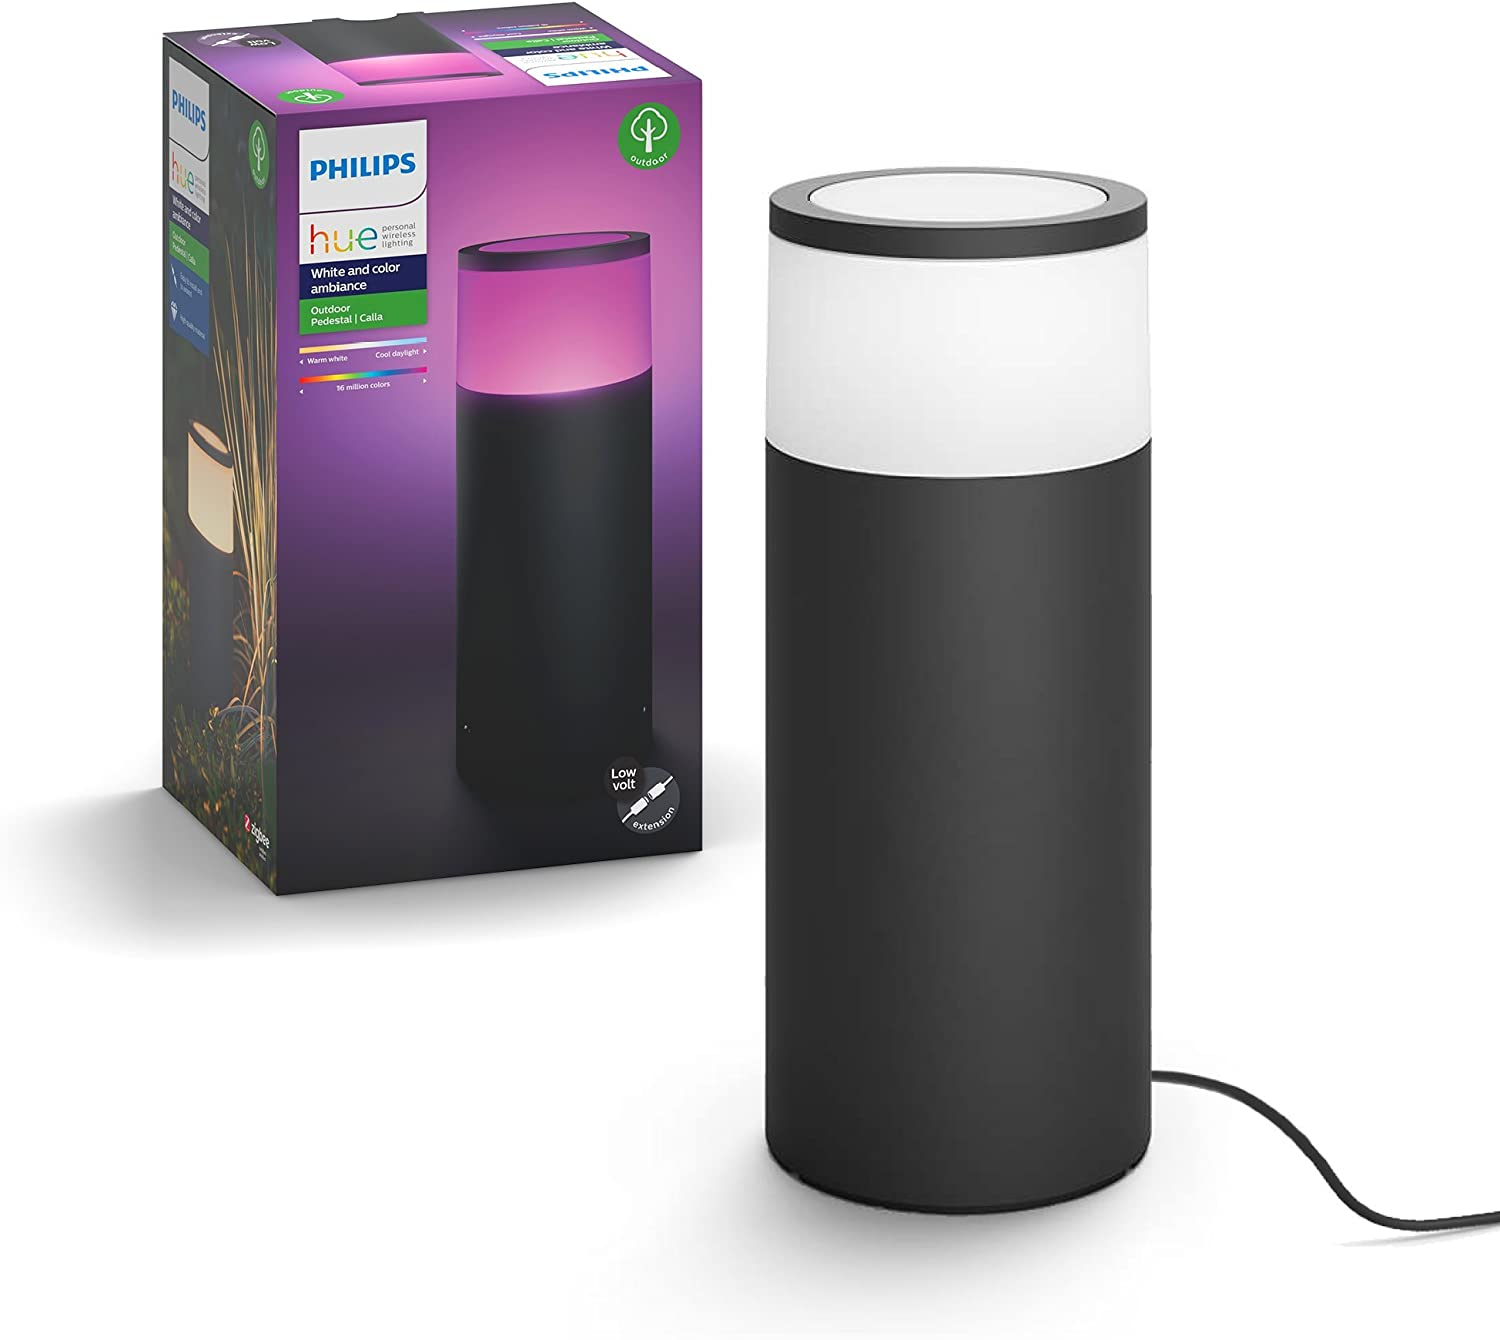 Philips Hue Calla White & Color Ambiance Outdoor Smart Pathway light extension (Hue Hub & Base Kit required), 1 White & Color Pathway light + mounting kit, Works with Alexa, HomeKit & Google Assistant